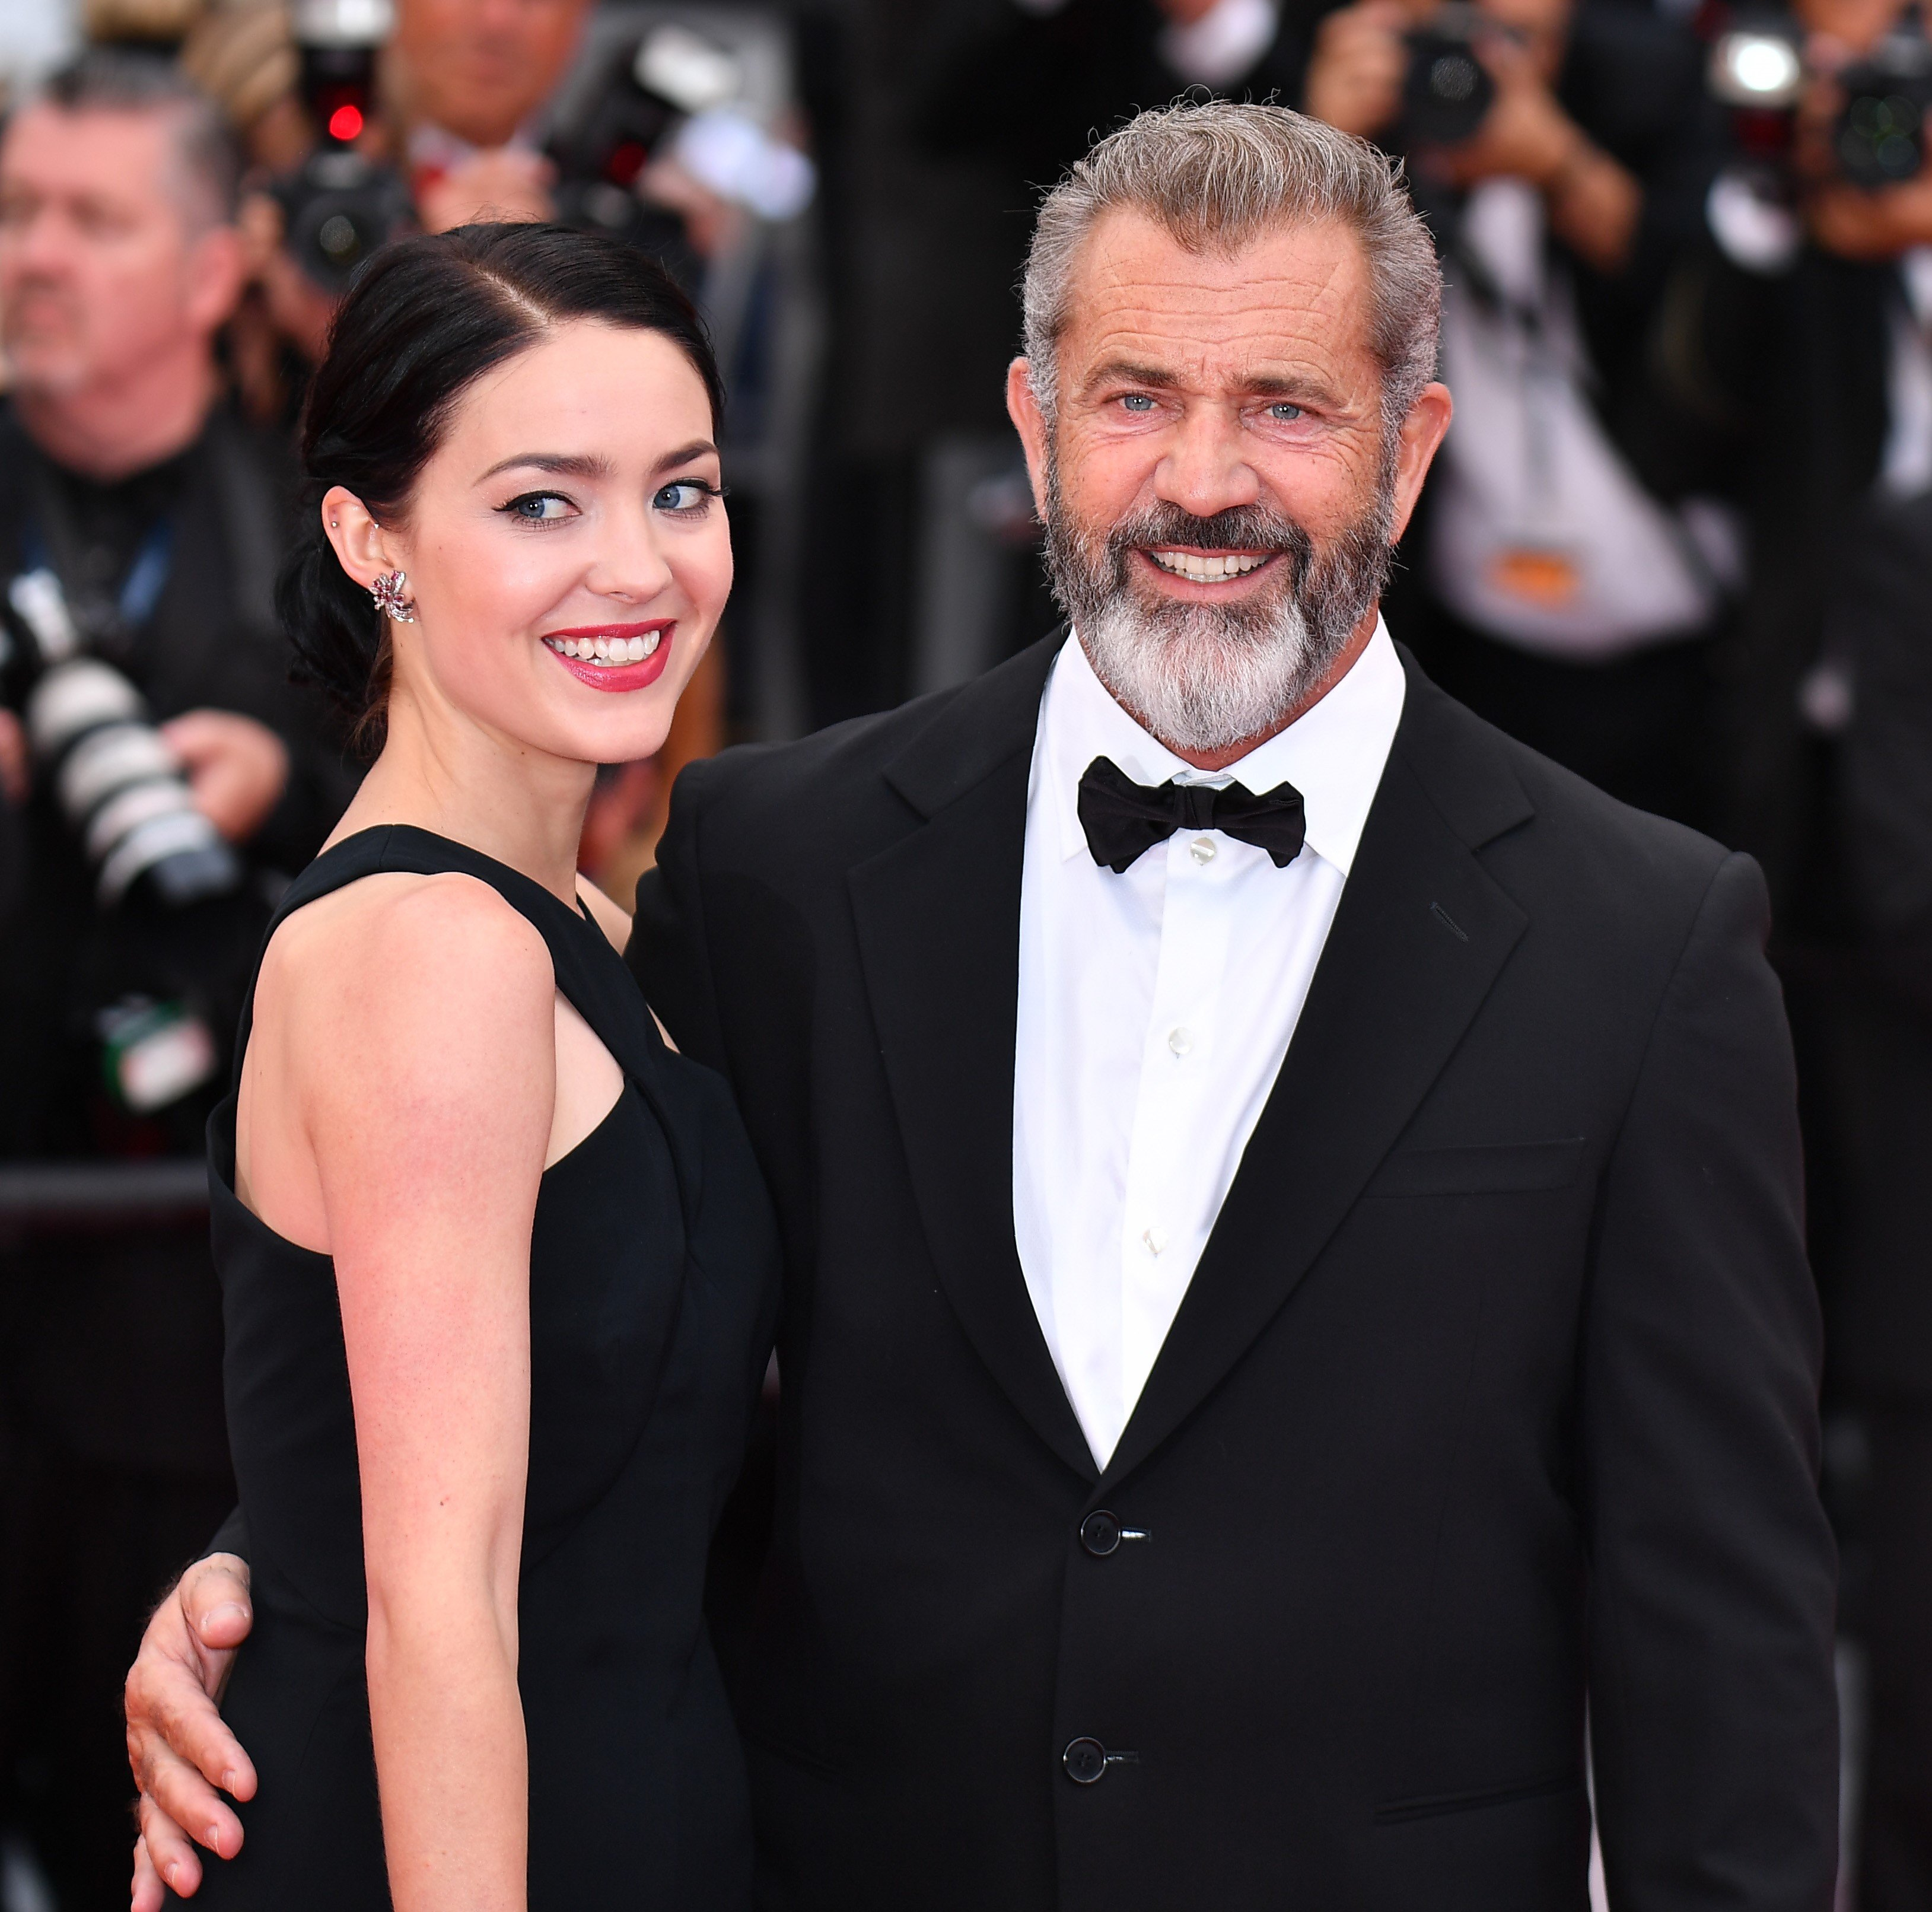 Mel Gibson and Rosalind Ross at Cannes May 22, 2016